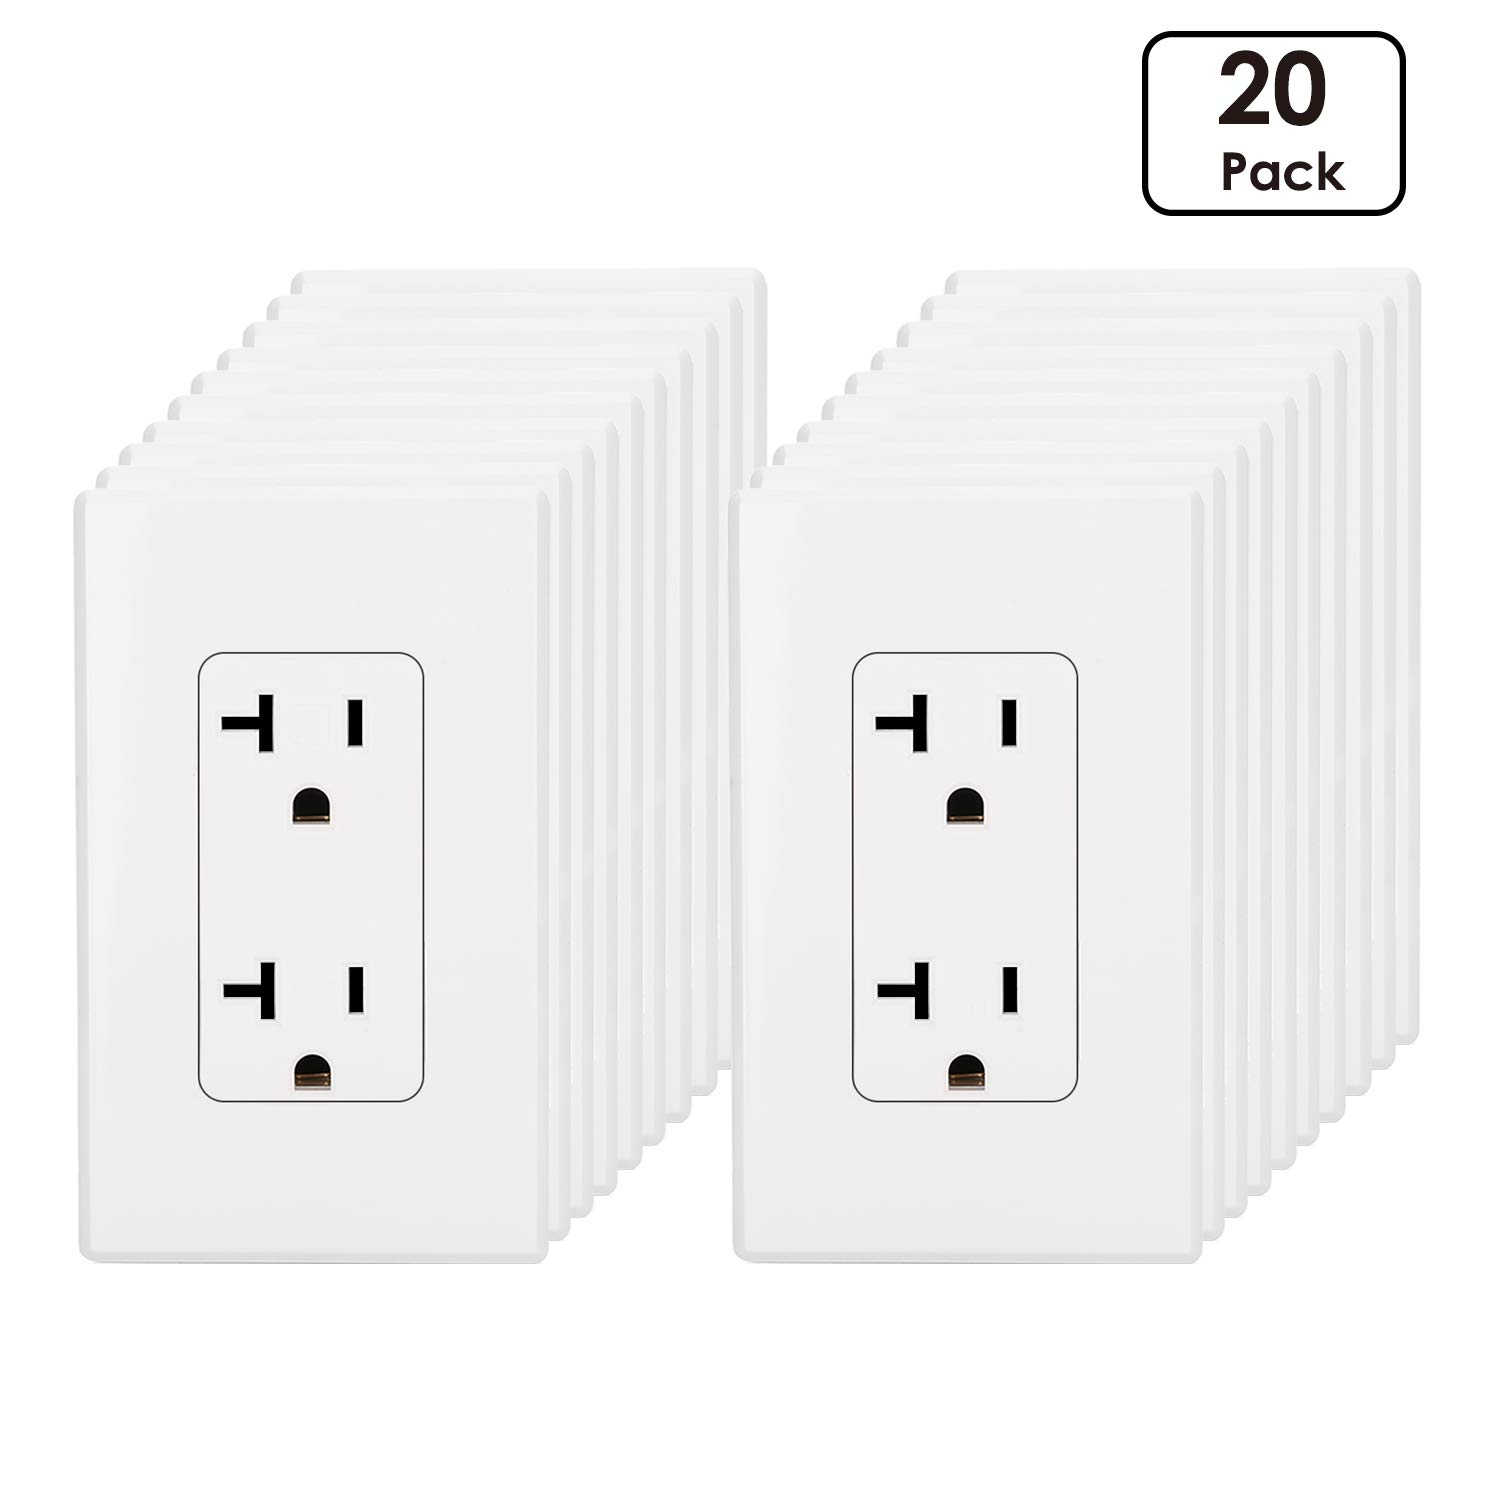 [20 Pack] BESTTEN 20A Decor Receptacle Standard Duplex Electrical Wall Outlet, Screwless Wall Plates Included, Residential and Commercial Grade, UL Listed, White